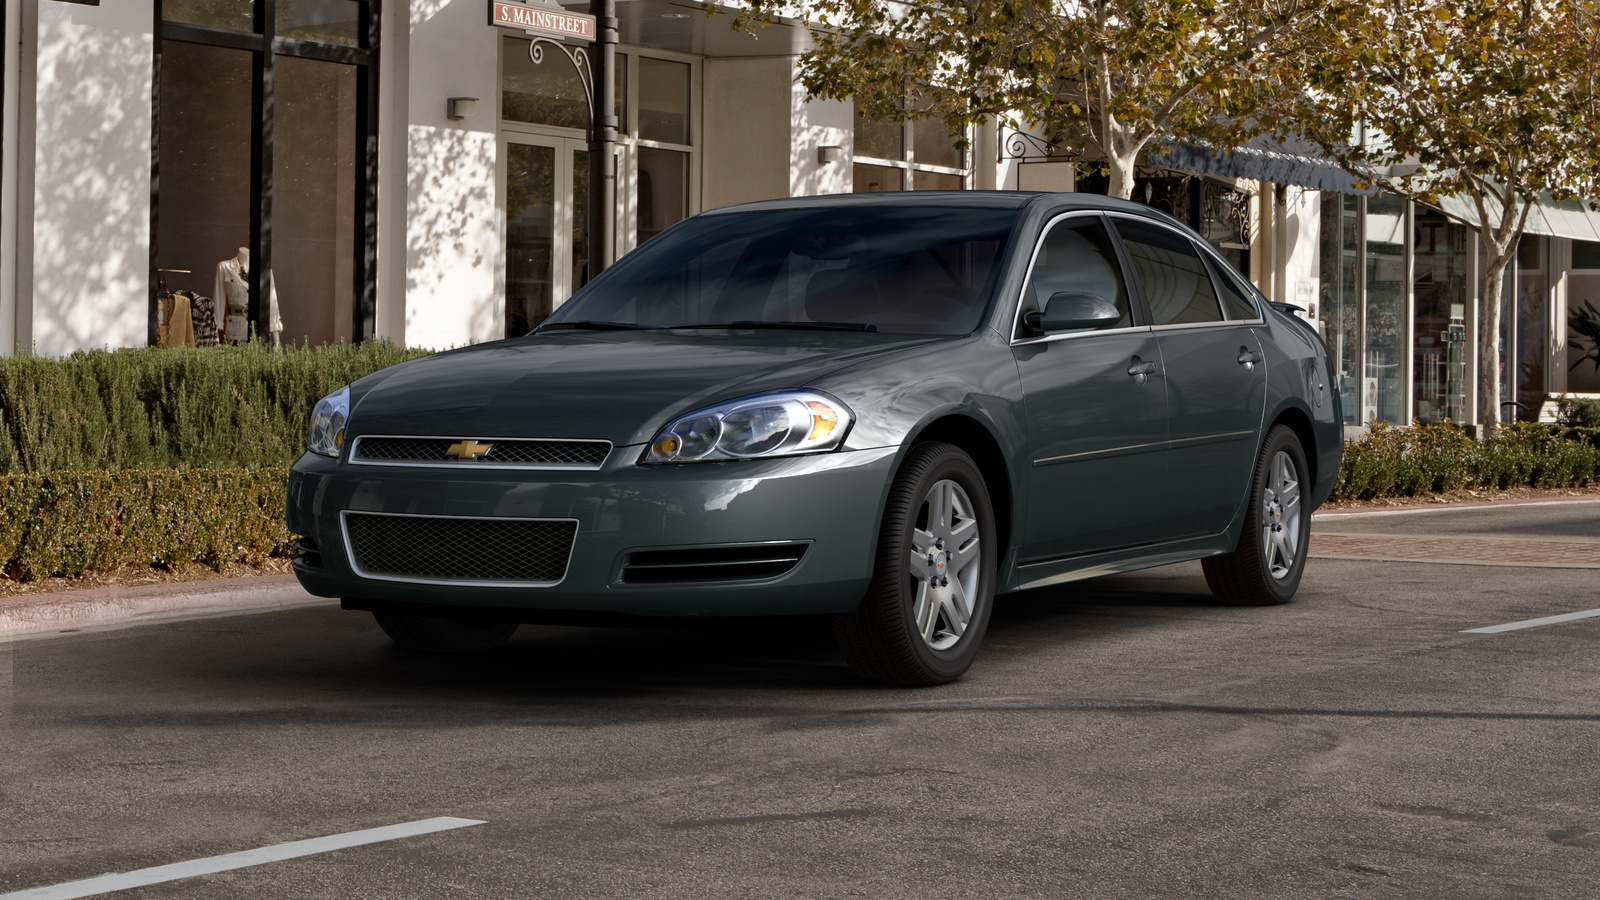 2013 chevrolet impala review cargurus. Cars Review. Best American Auto & Cars Review